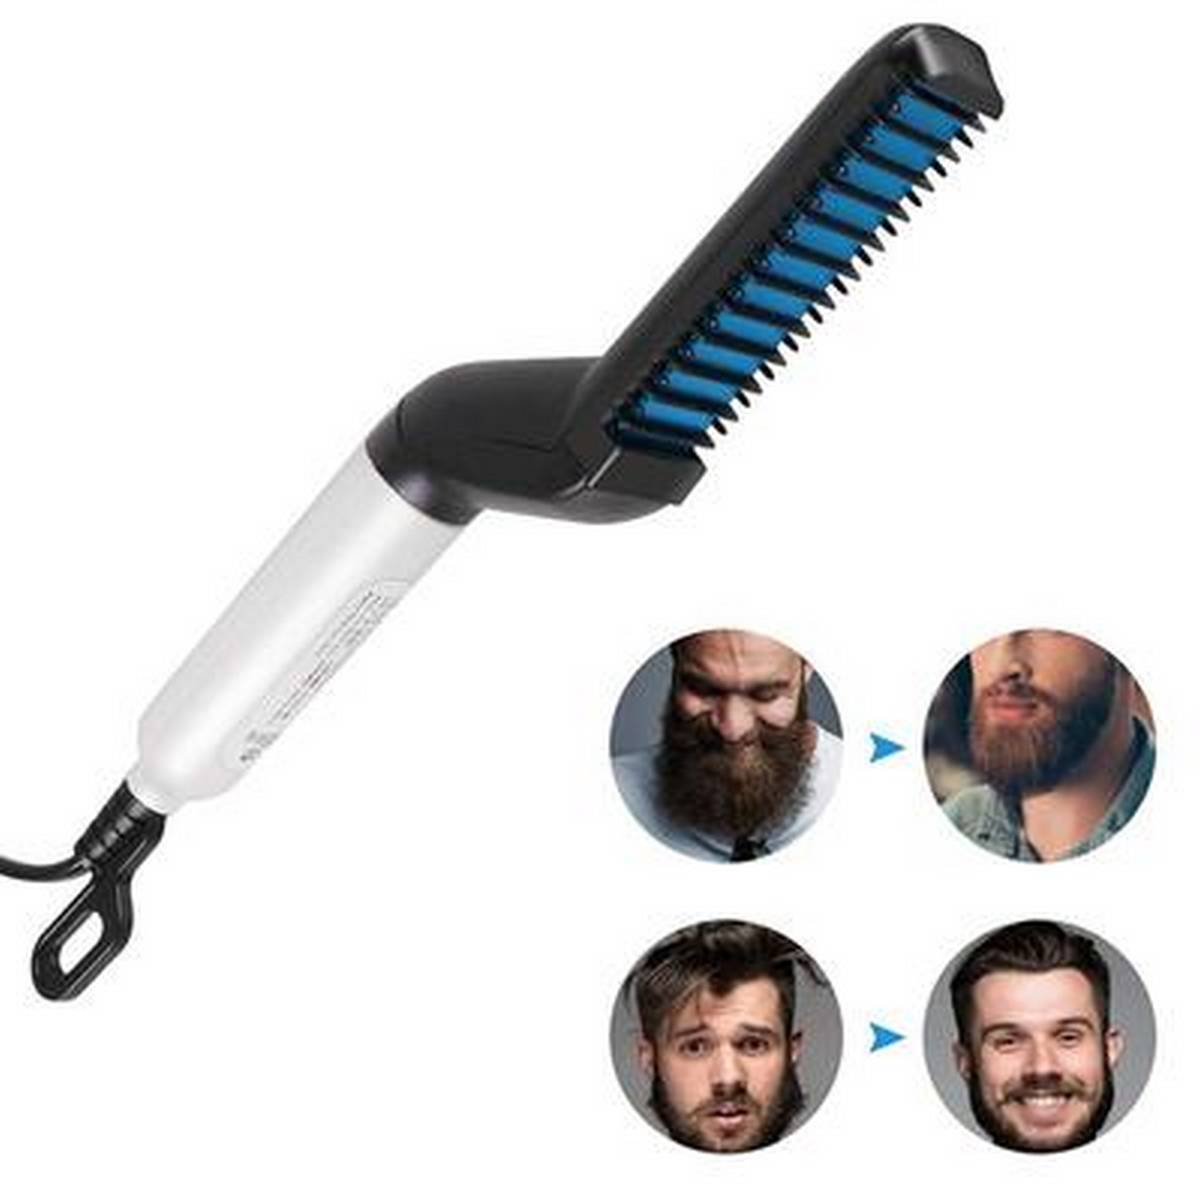 Electric Beard Straightener for Men - Professional Quick Styling Comb for Frizz-Free Beard Hair - Ceramic Ionic Heating Control - Portable Brush with Anti-Scald Feature